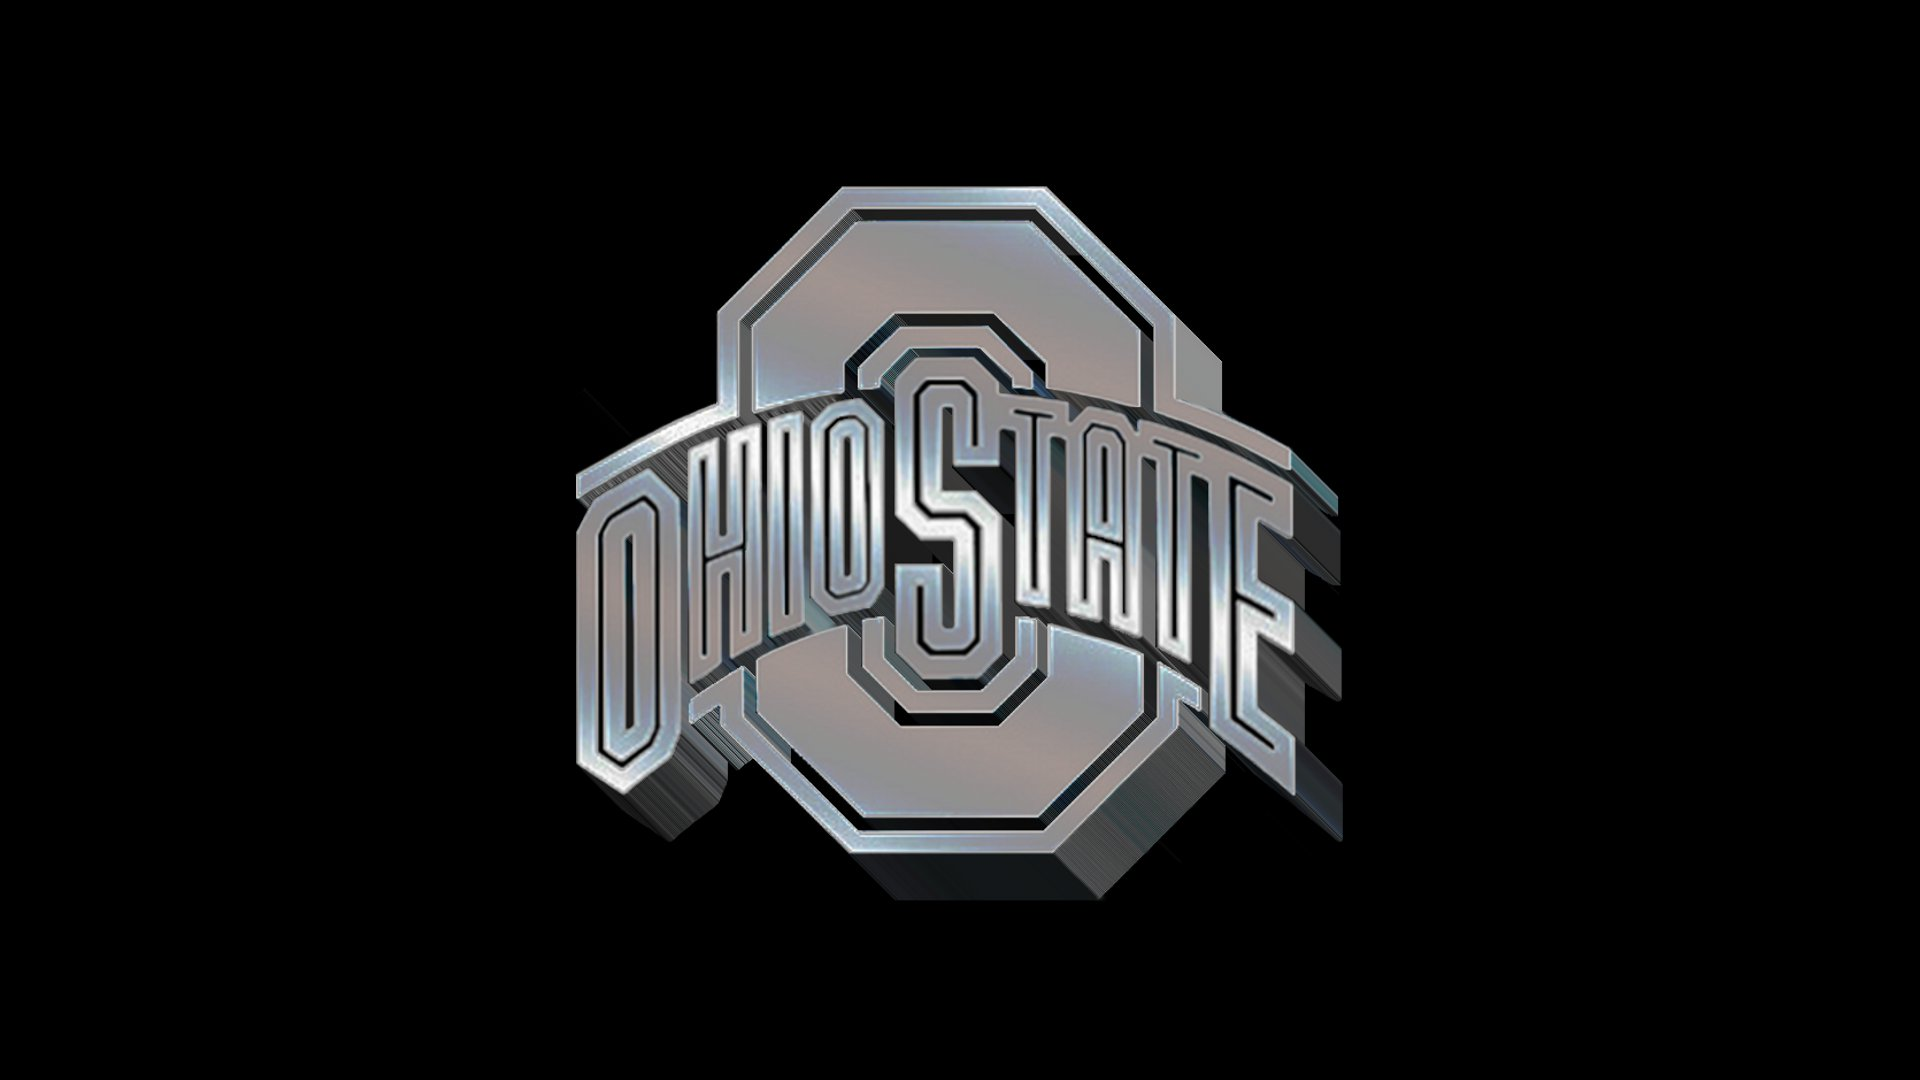 OSU Wallpaper 406   Ohio State Football Wallpaper 30109411 1920x1080